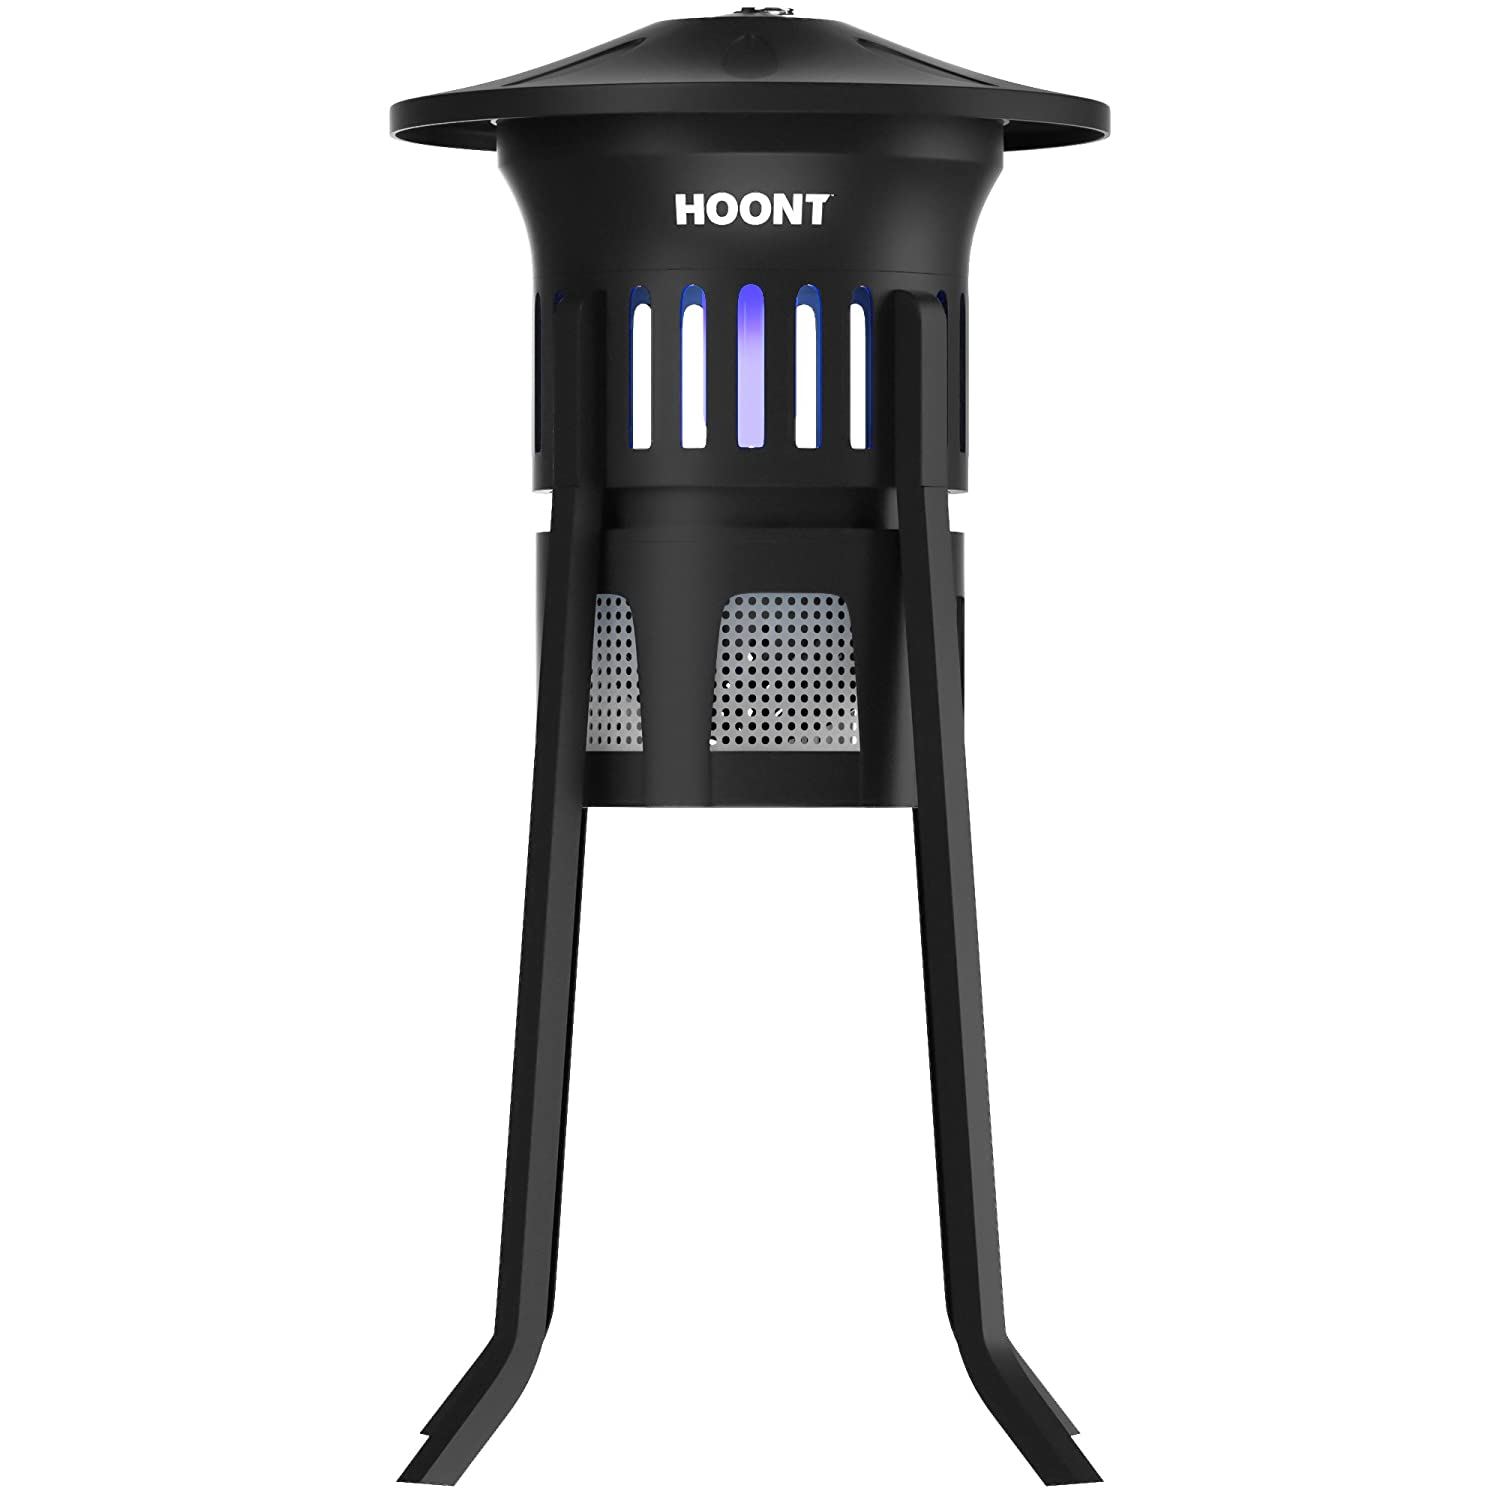 Hoont Mosquito Killer Gnat Fly Trap Killer, Indoor & Outdoor Mosquito Trap Control Stand - Bright UV Light Fan/Exterminate Mosquitoes, Wasps, Etc. – Perfect Patio, Gardens, etc. Etc. – Perfect Patio H966-StndngInsctTrp-7-23-2018